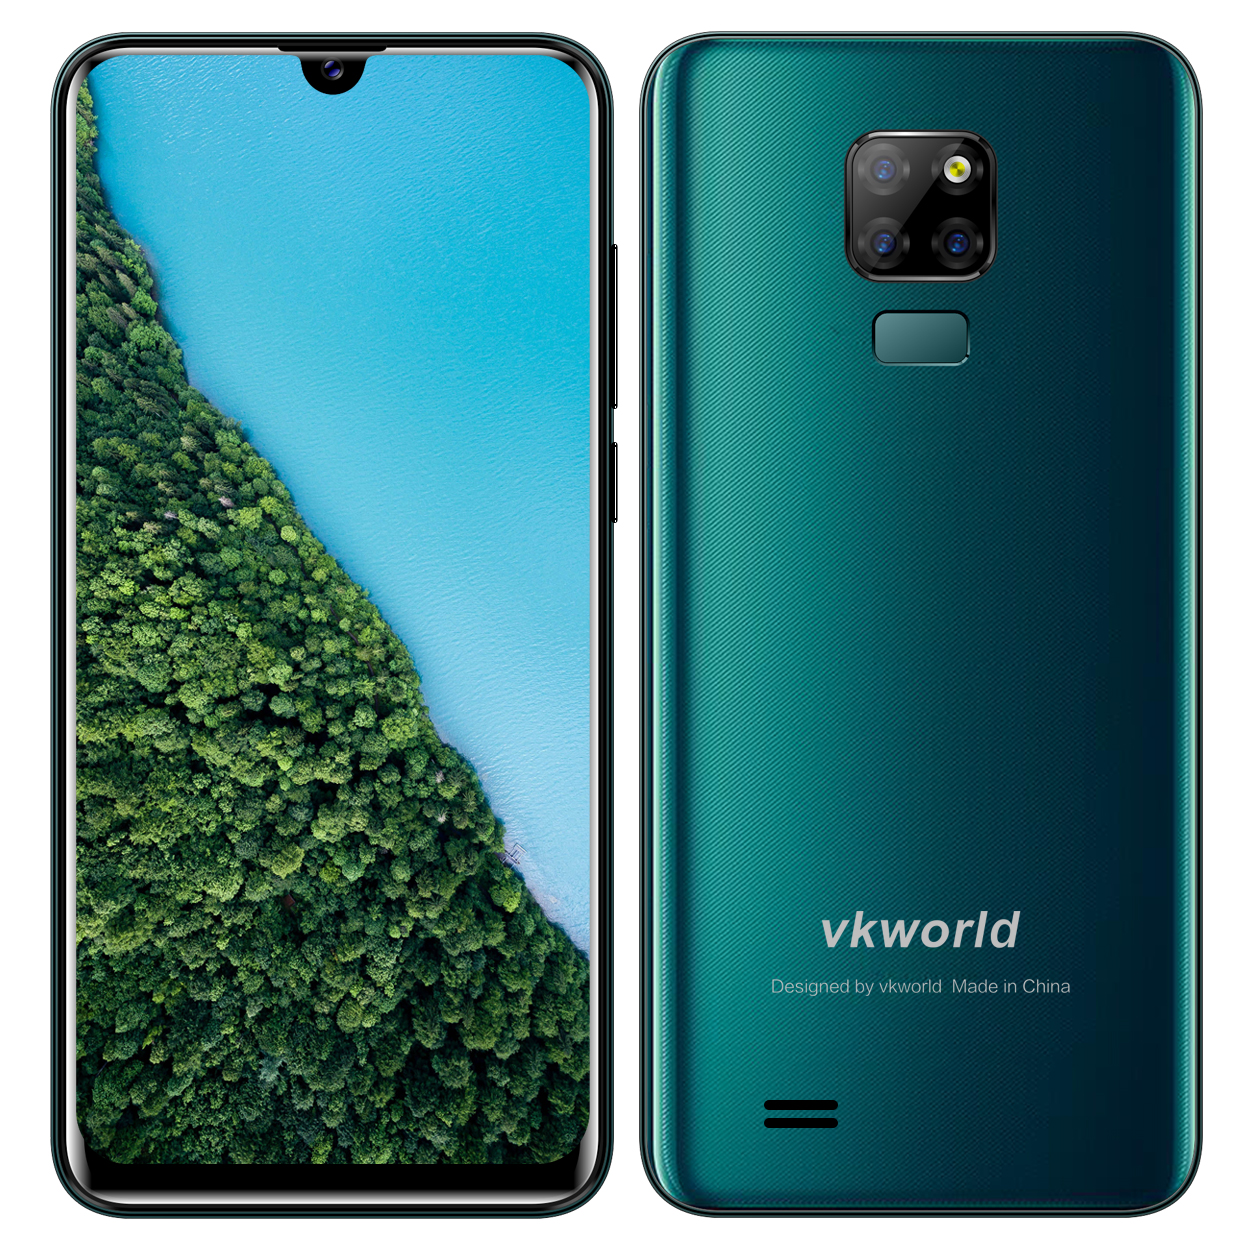 Green OEM/ODM Mobile Phones VKWORLD SD200 customized cellphone 6.3 inch phone 3GB RAM+32GB ROM Dual SIM Handphone